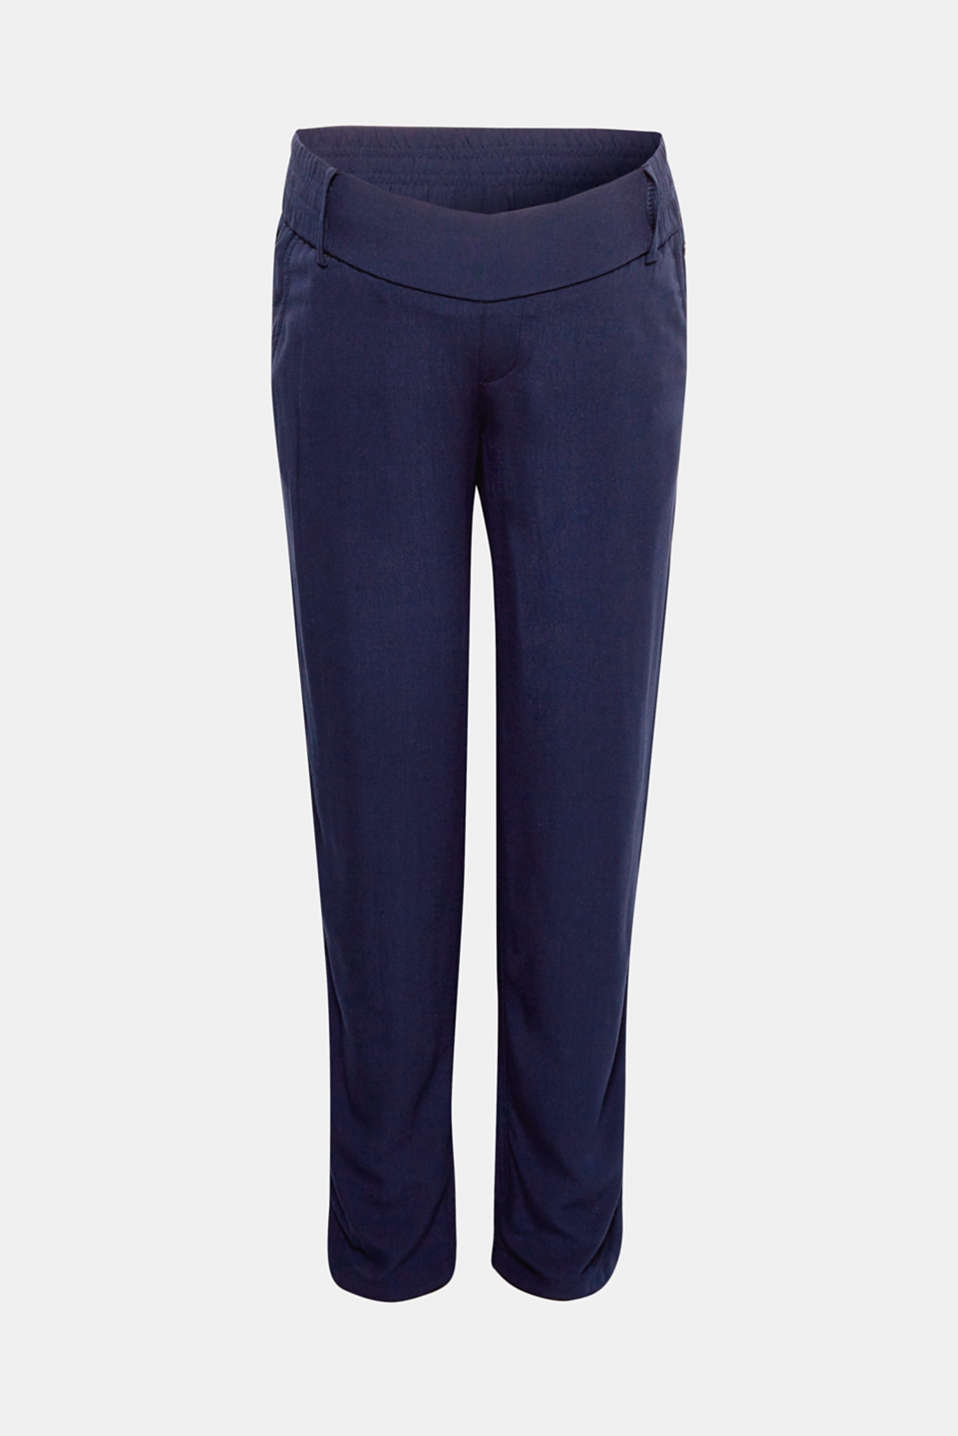 Tracksuit style trousers with an under-bump waistband, LCNIGHT BLUE, detail image number 2